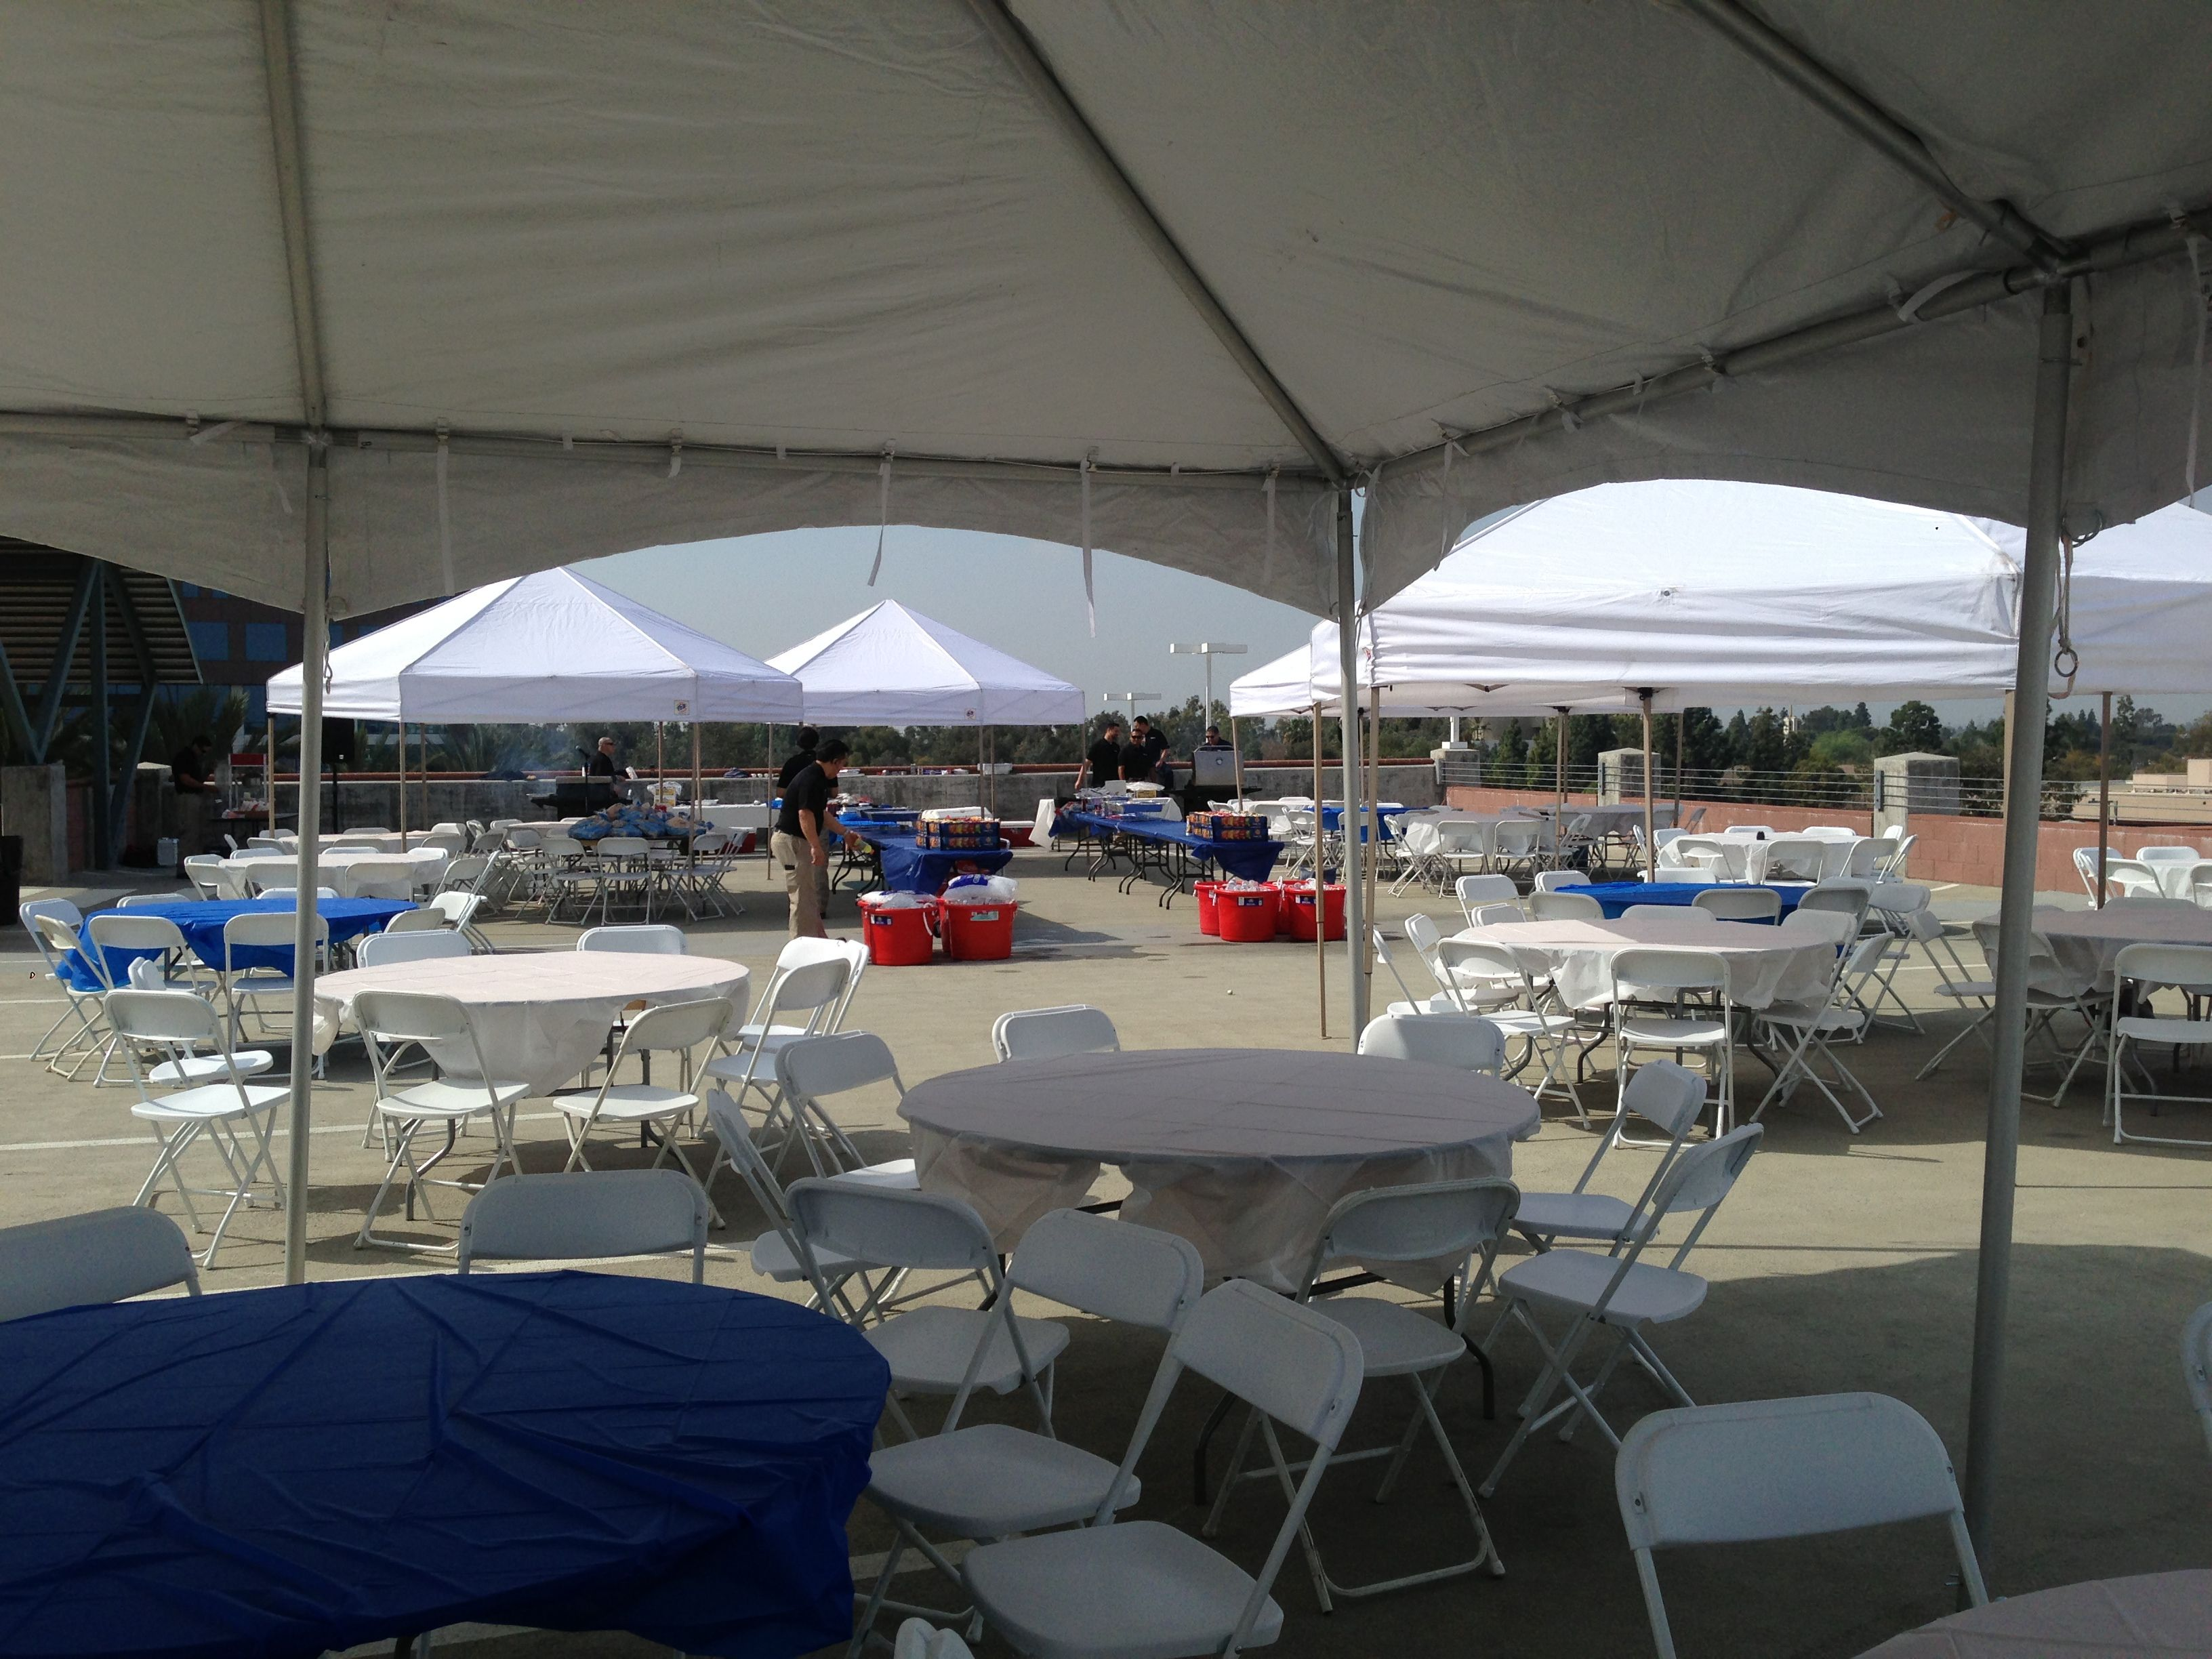 Tent Rental Tables Chairs And More For Parties And Events In The Greater Los Angeles And Orang Dining Room Chairs Modern Tent Rentals Blue Chairs Living Room